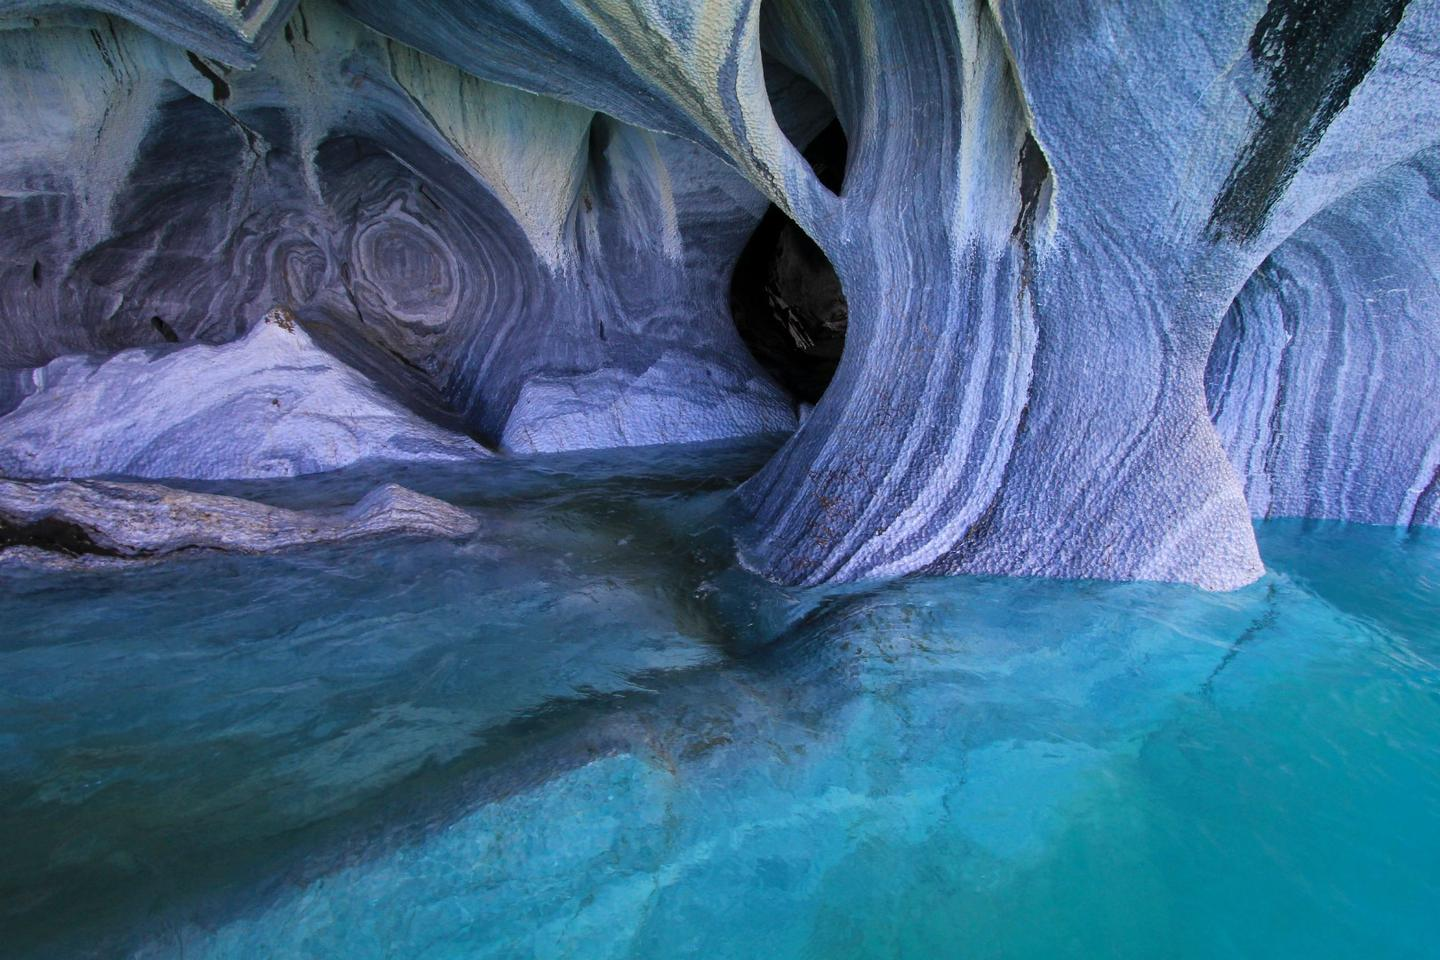 Carved into the Patagonian Andes in Chile, Las Cavernas de Mármol (Marble Caves) are among Patagonia's most incredible natural wonders